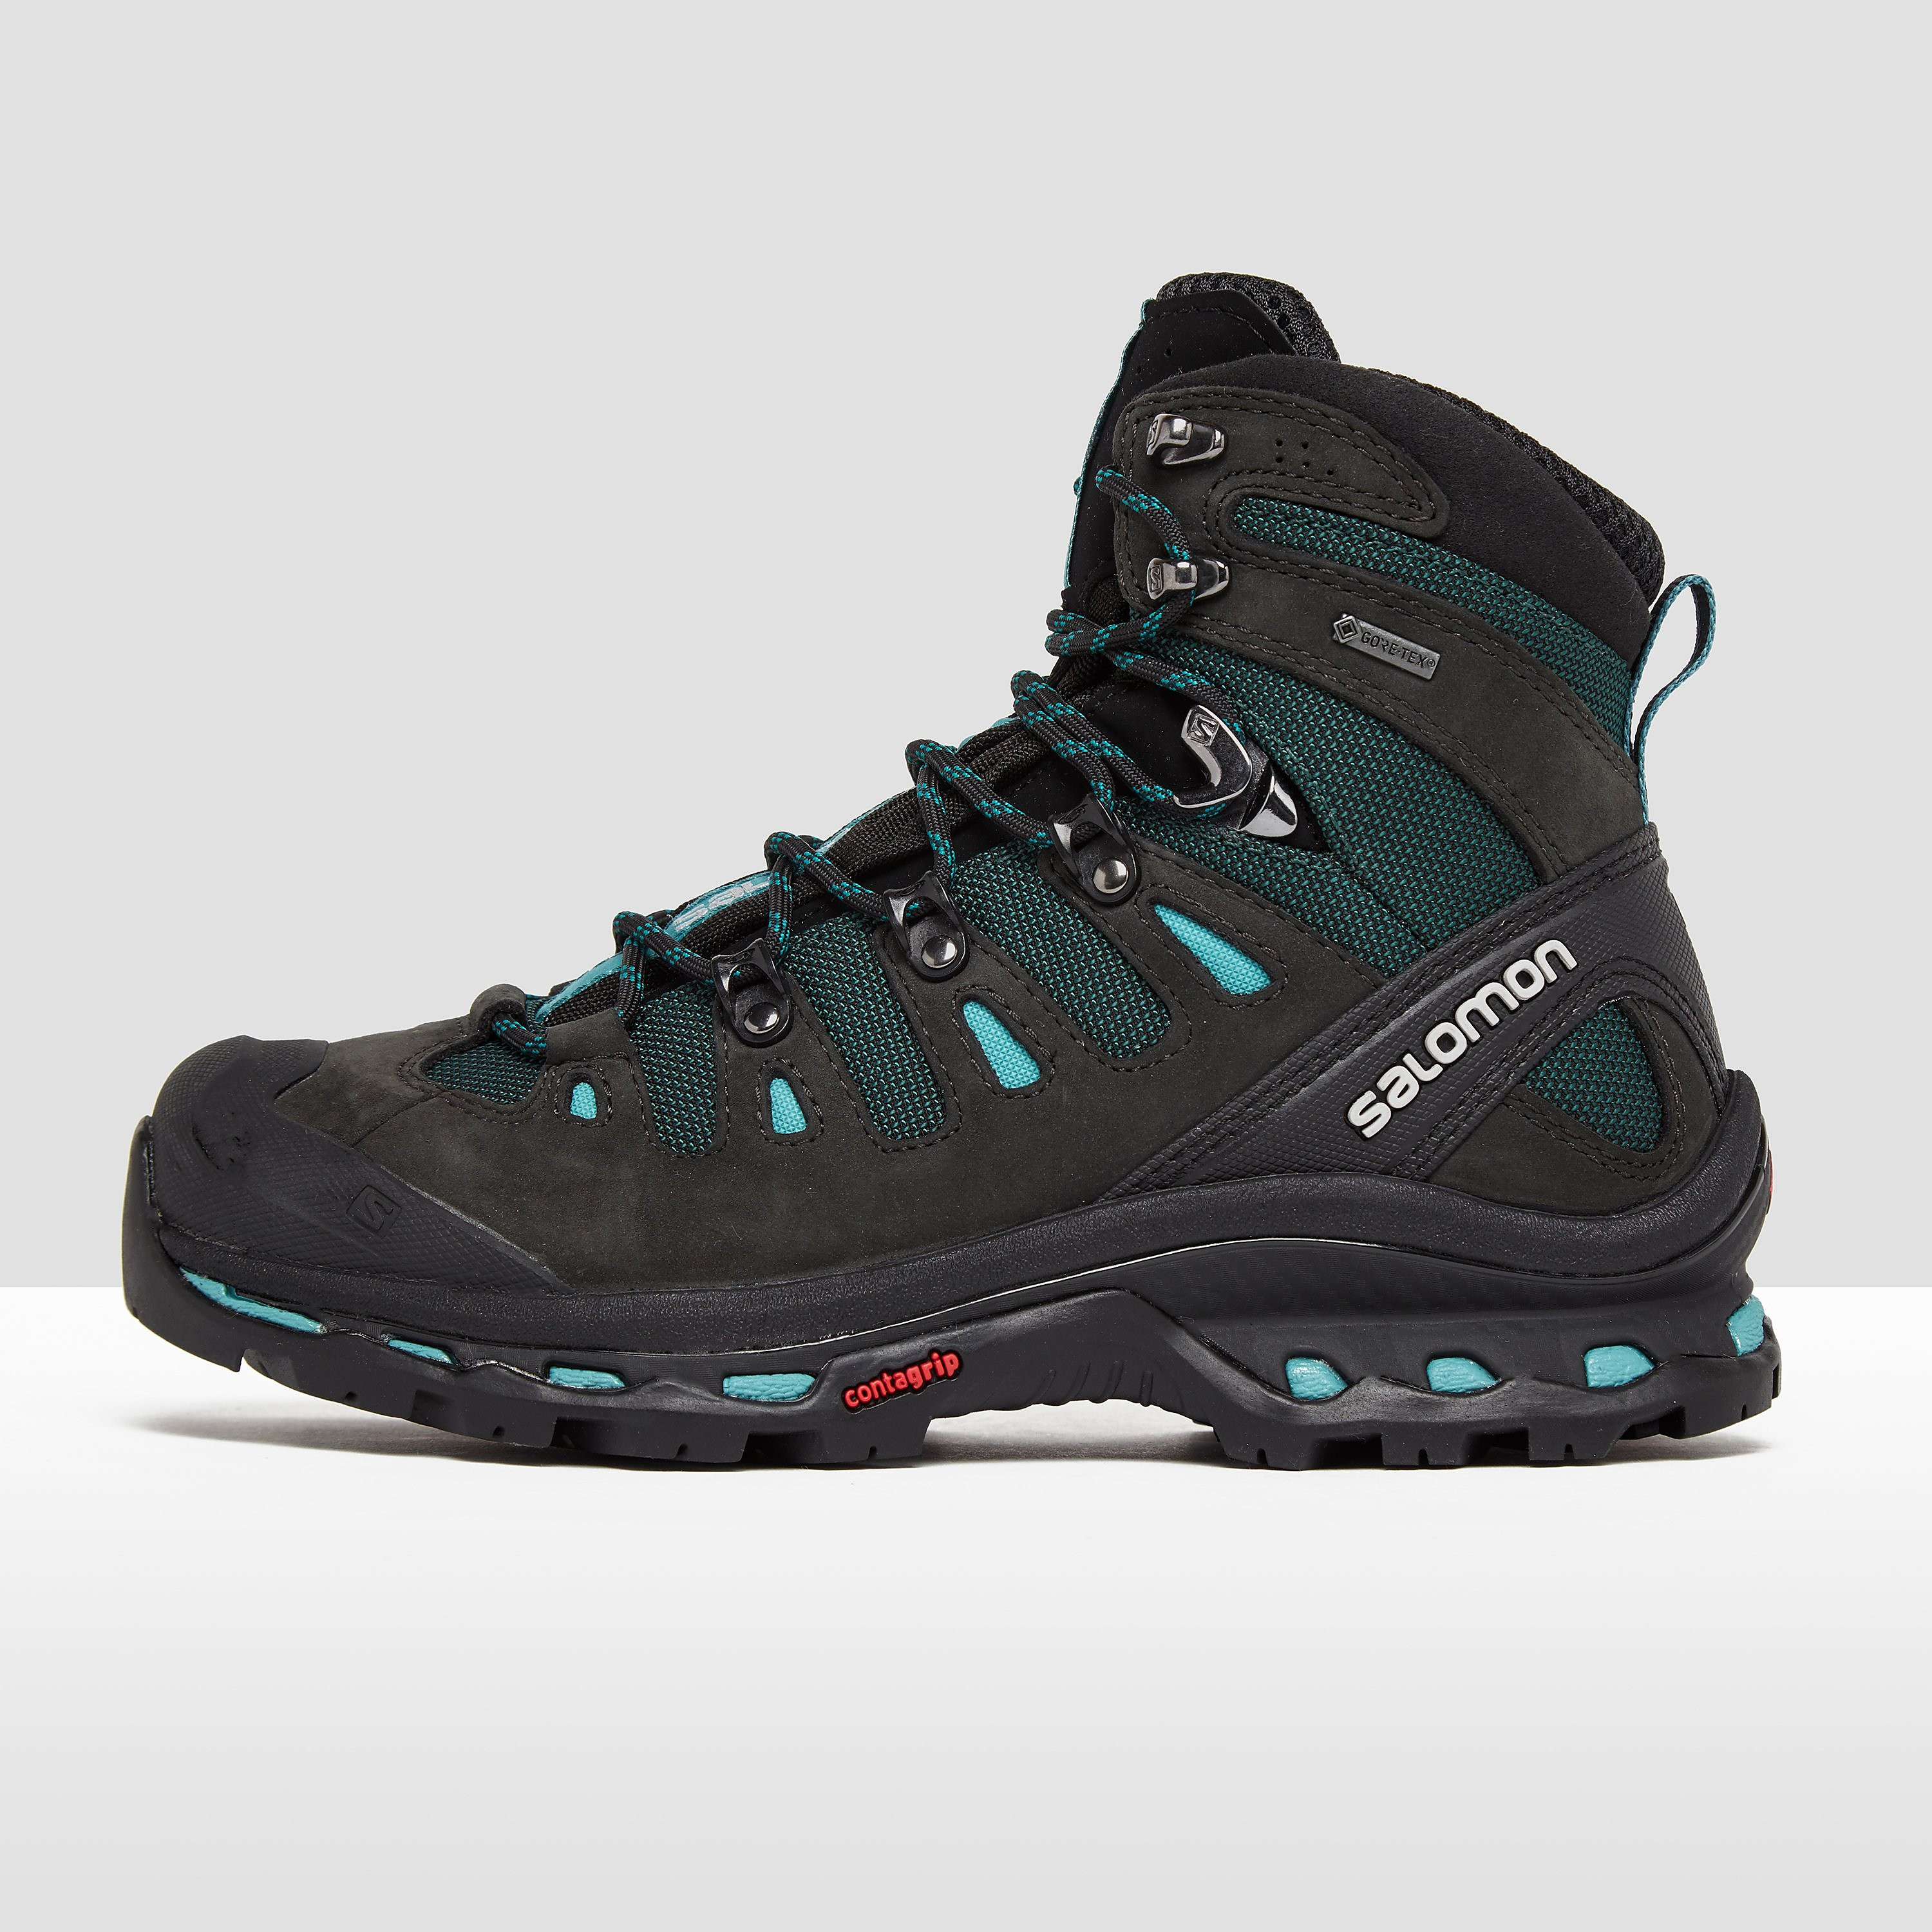 Salomon QUEST 4D 2 GTX® WOMEN'S HIKING BOOT